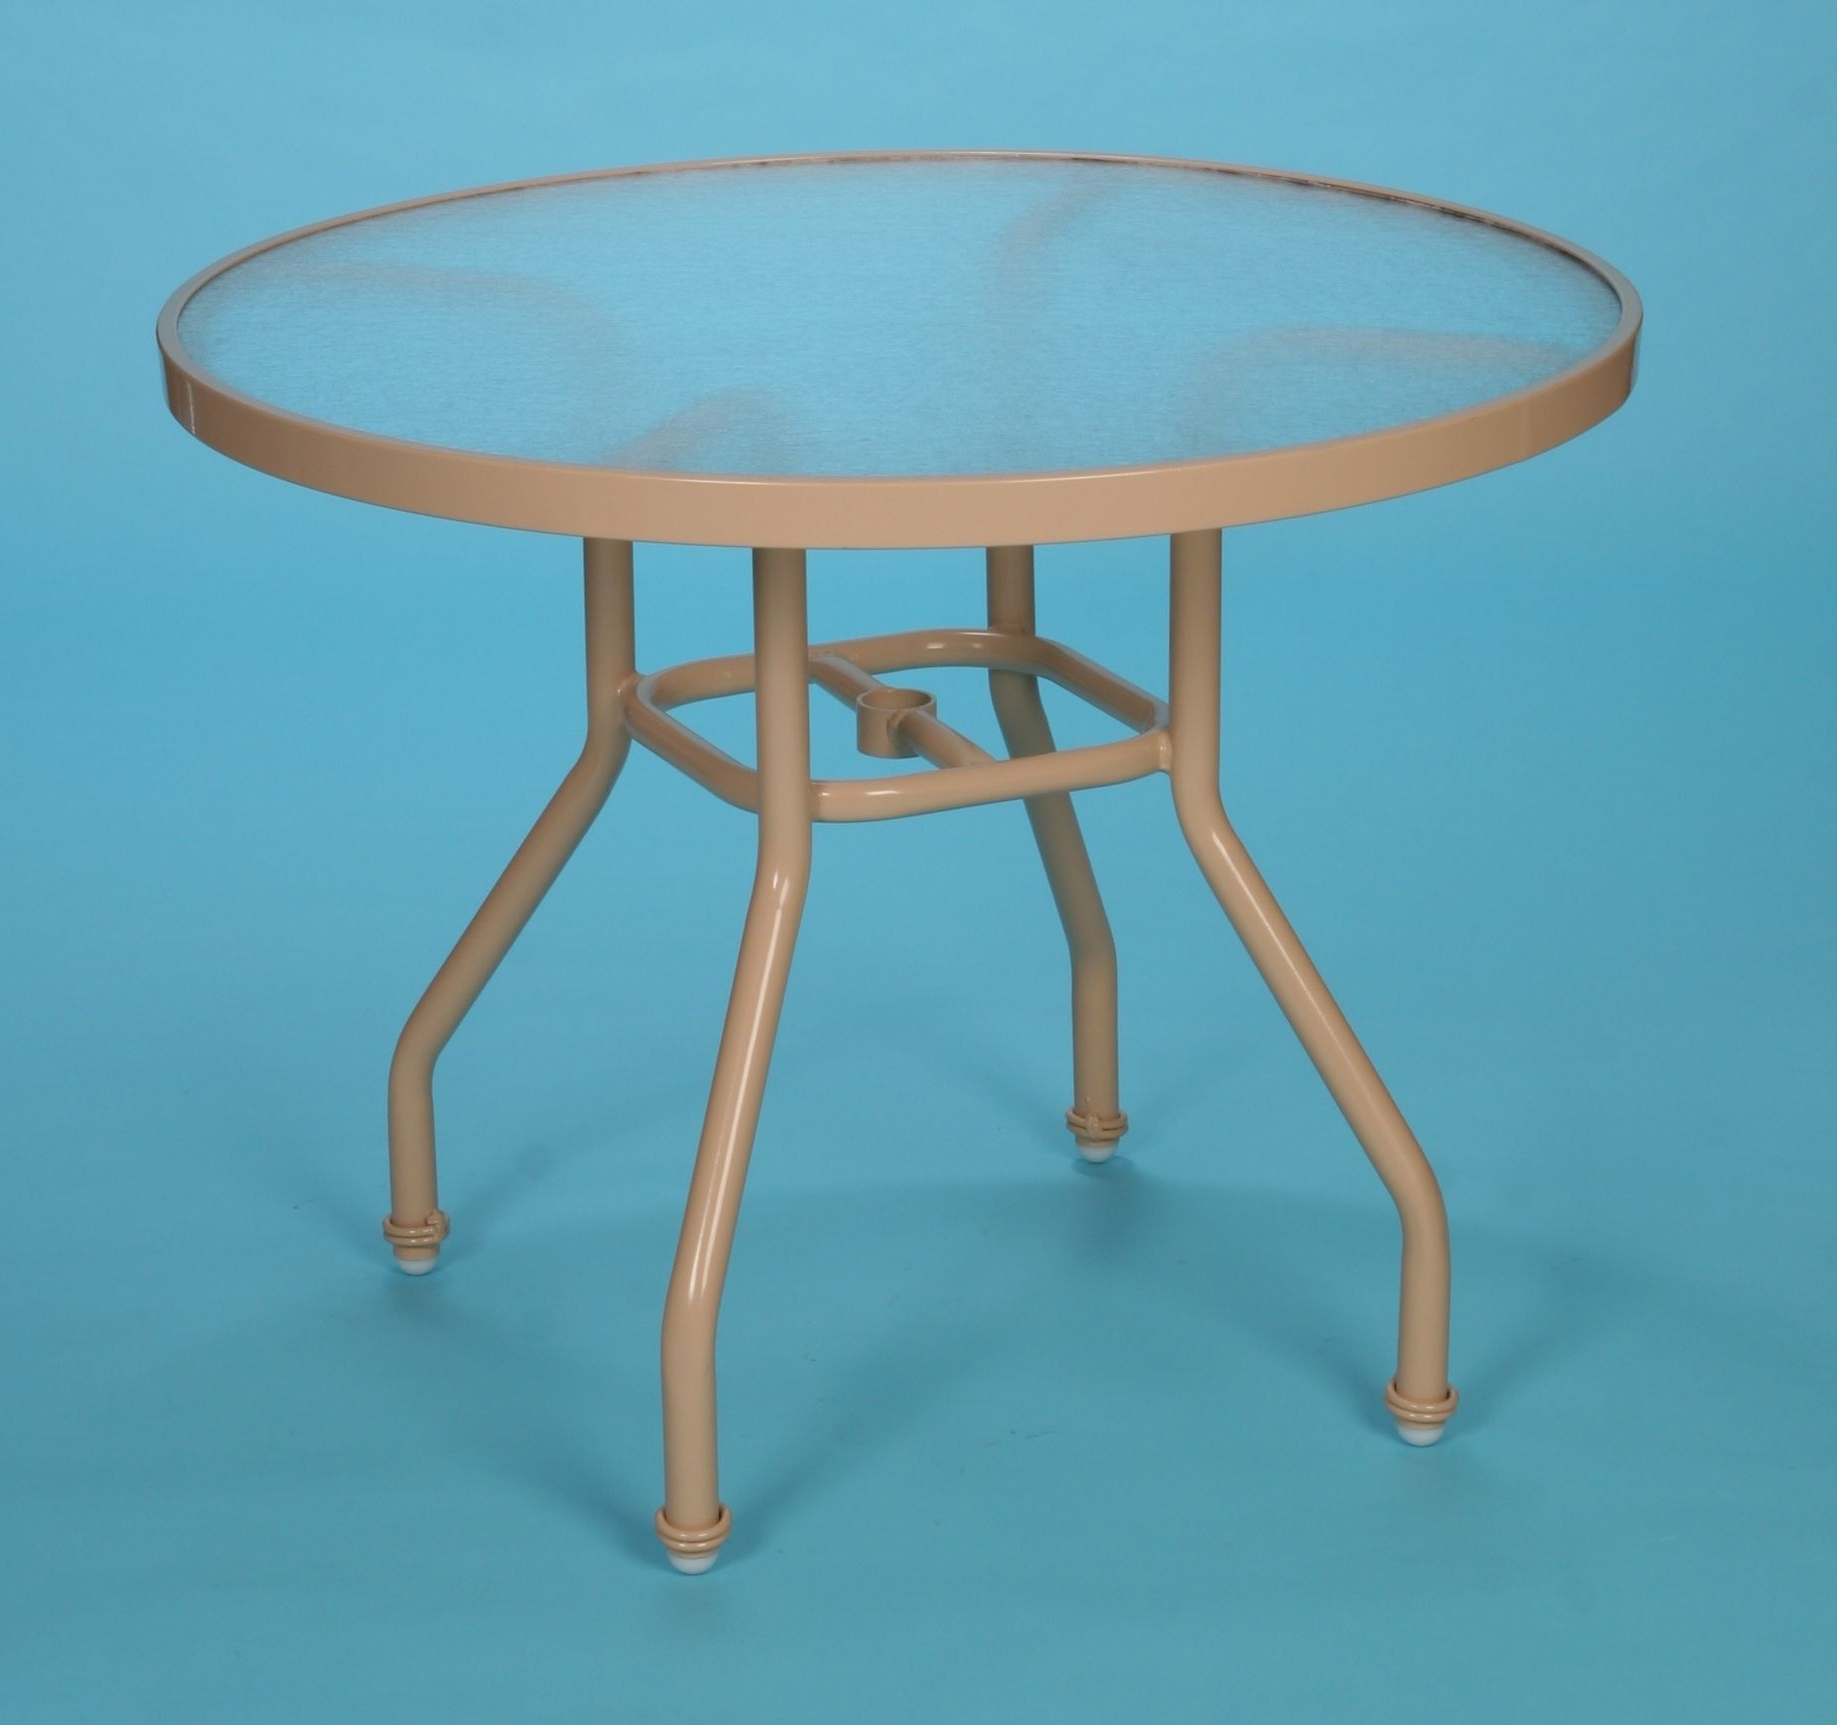 Patio Furniture In Round Acrylic Dining Tables (View 14 of 25)